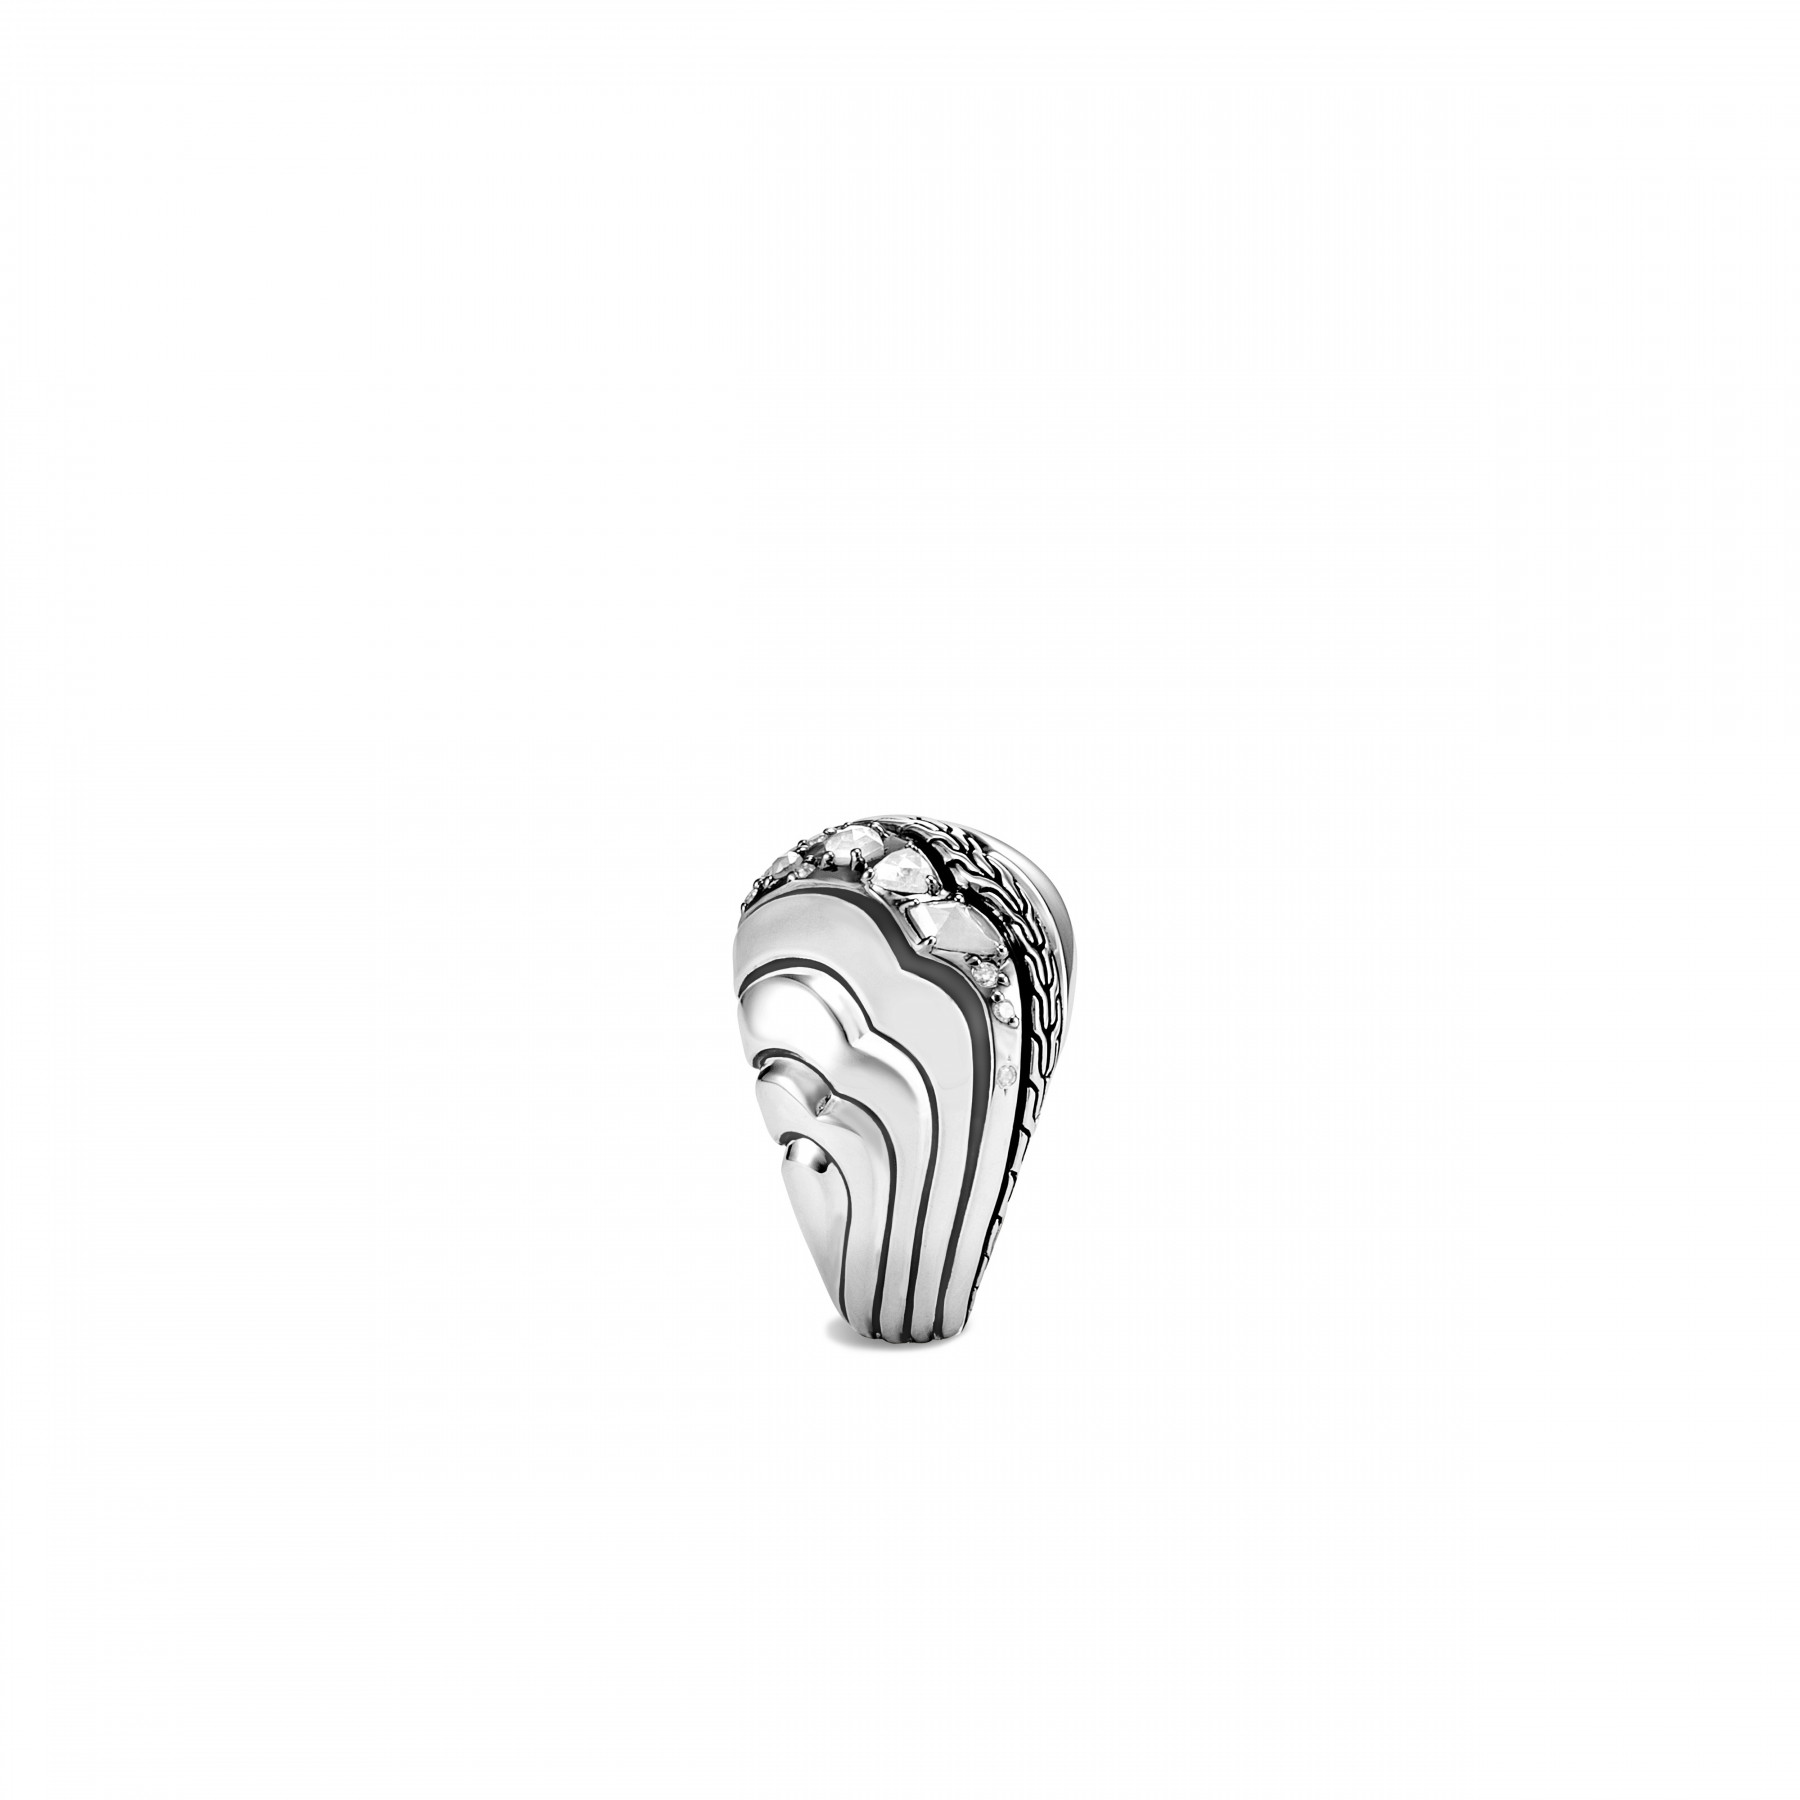 John Hardy Lahar White and Grey Diamond Dome Ring side view